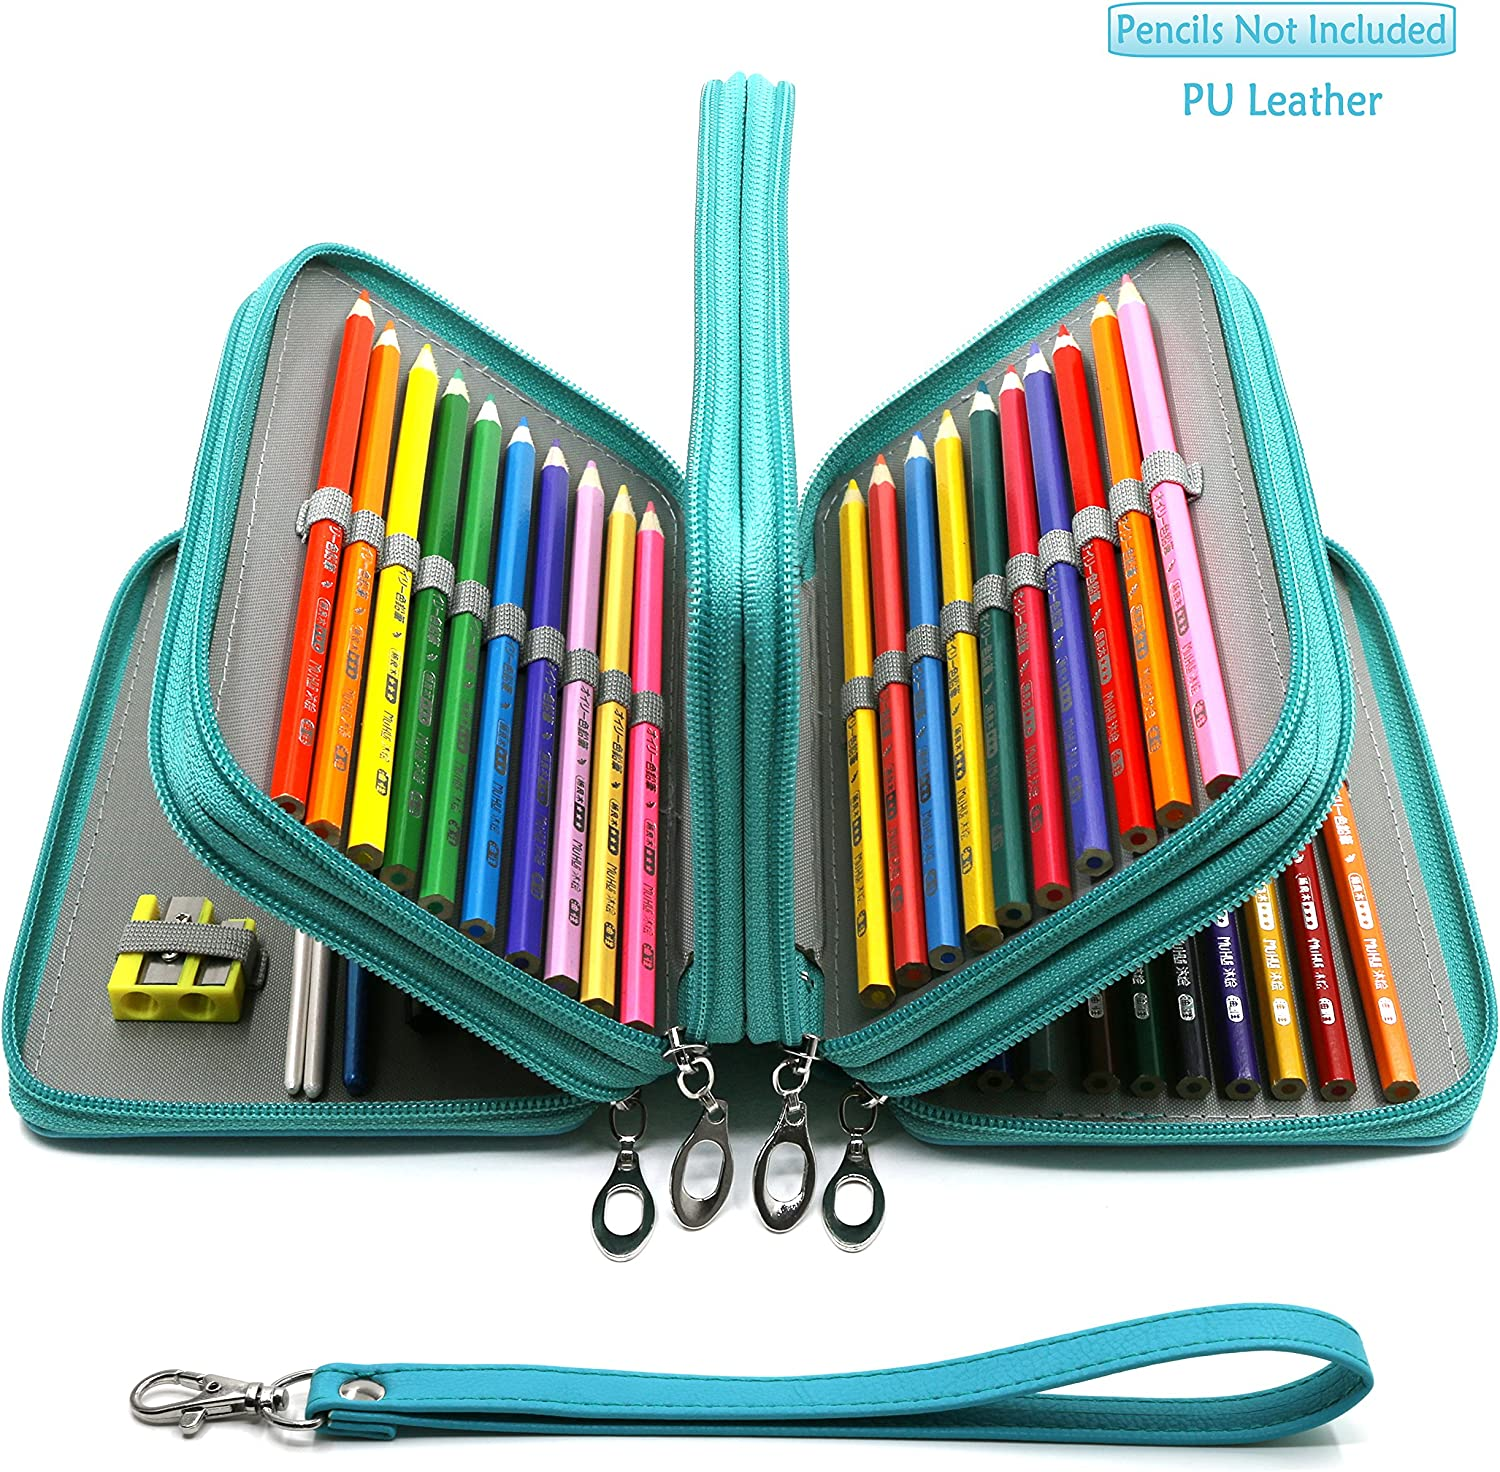 YOUSHARES 72 Slots Pencil Case Turquoise PU Leather Handy Multi-Layer Large Zipper Pen Bag with Handle Strap for Colored//Watercolor Pencil